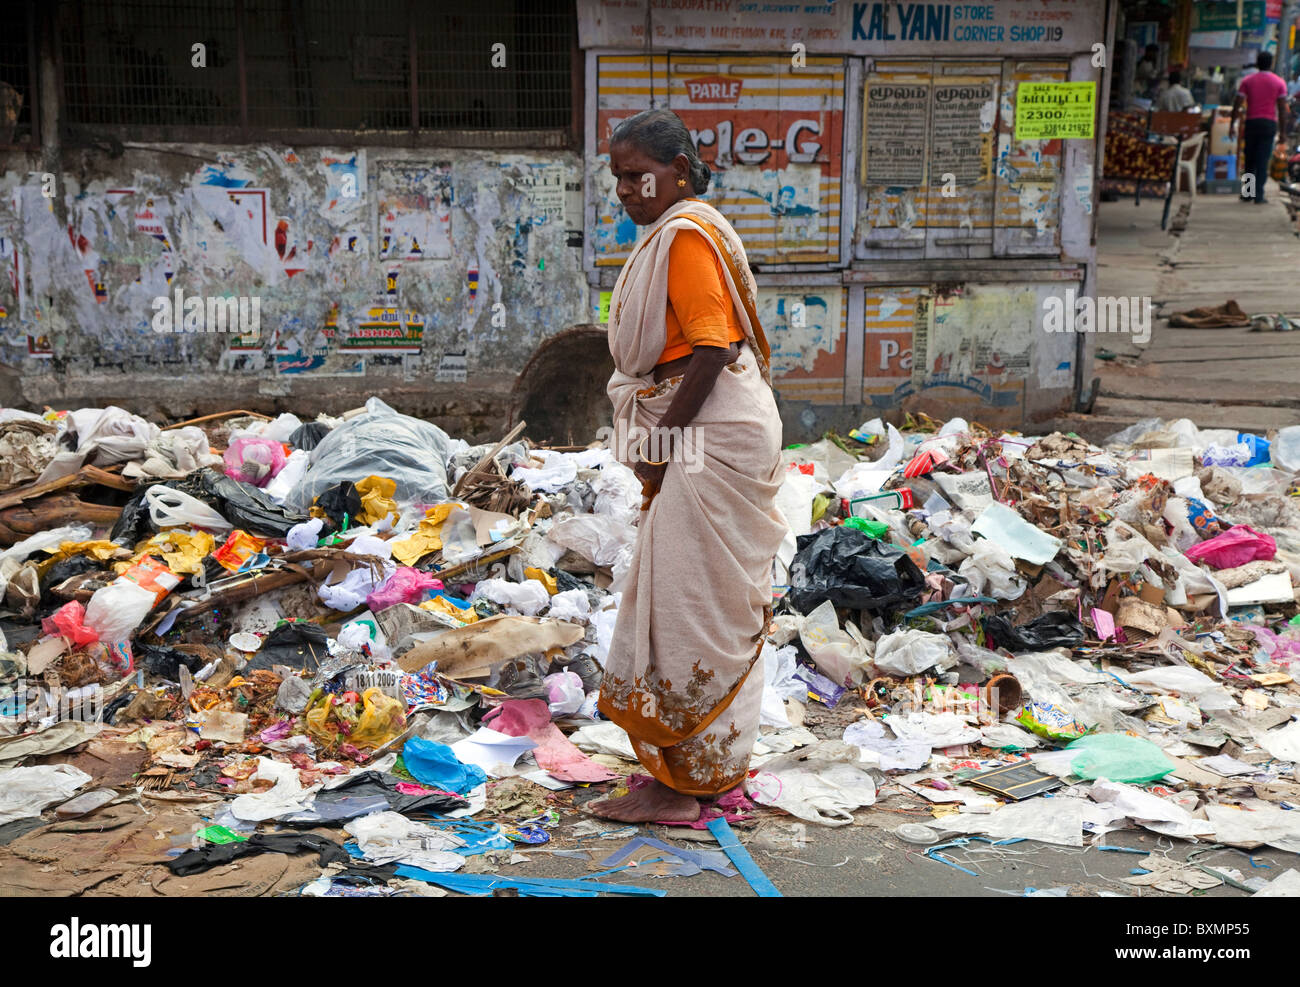 Garbage problem in the streets of Pondicherry, Tamil Nadu, India - Stock Image